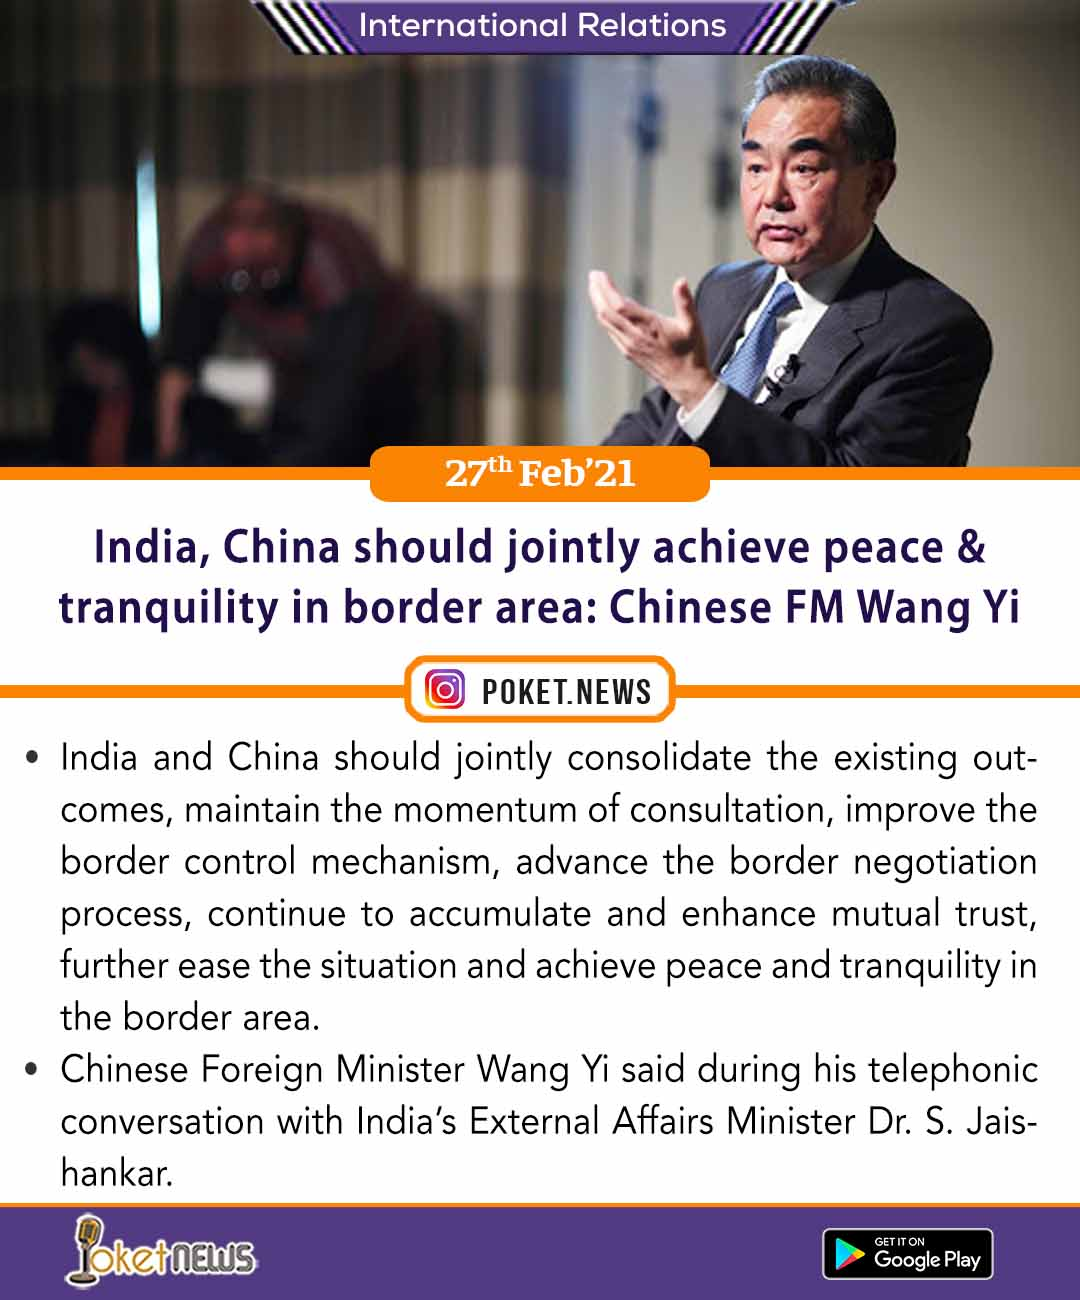 India, China should jointly achieve peace & tranquility in border area: Chinese FM Wang Yi